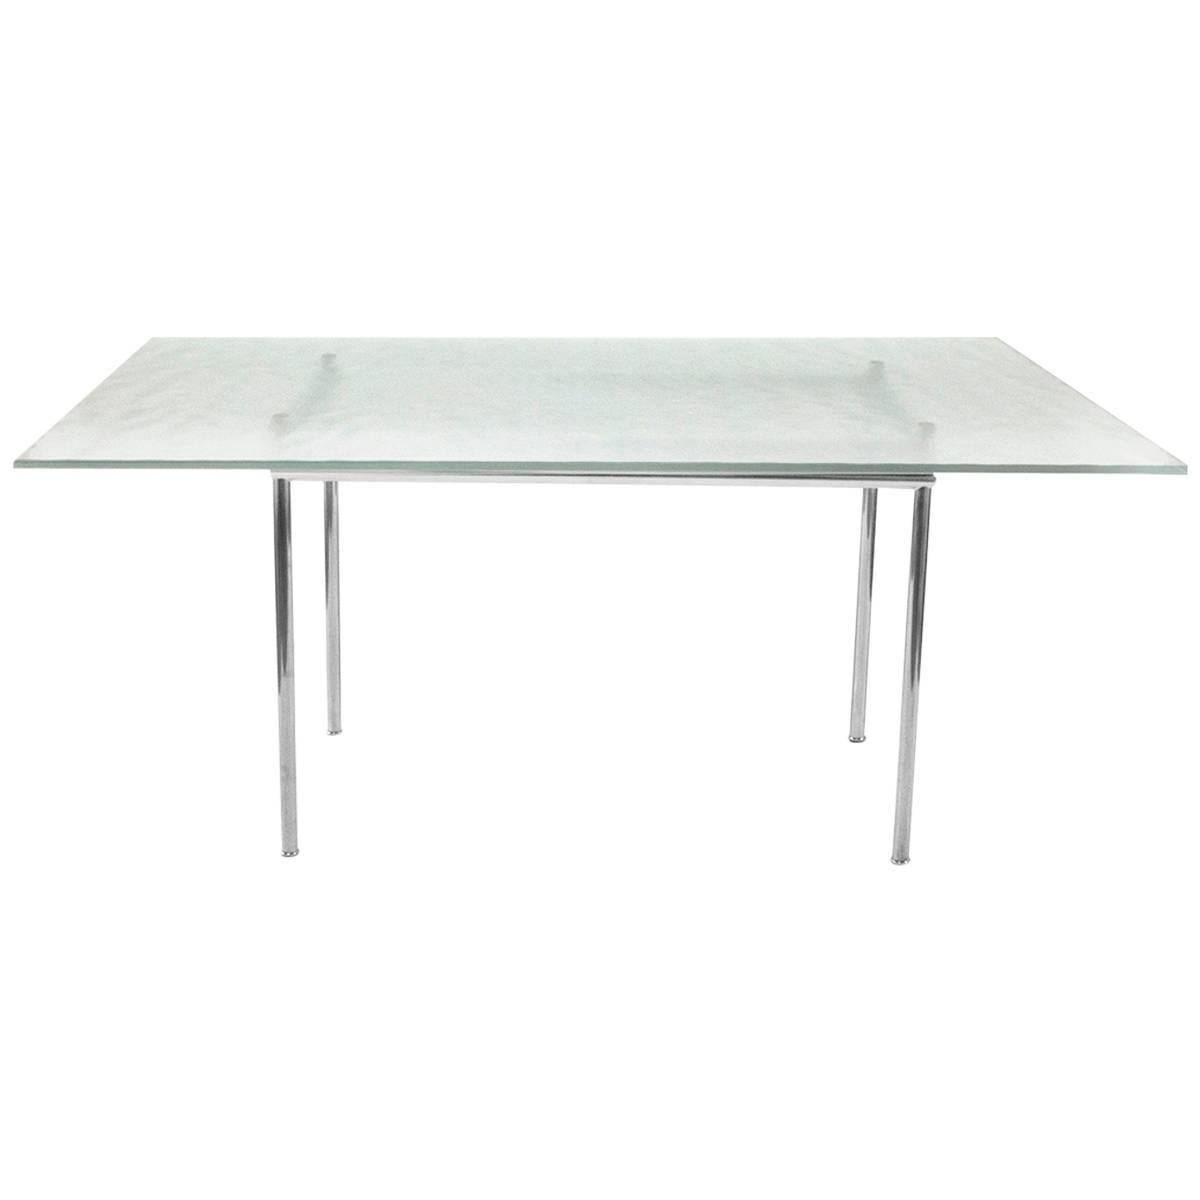 cassina glass top lc12 dining table by le corbusier modern italy for sale at 1stdibs. Black Bedroom Furniture Sets. Home Design Ideas